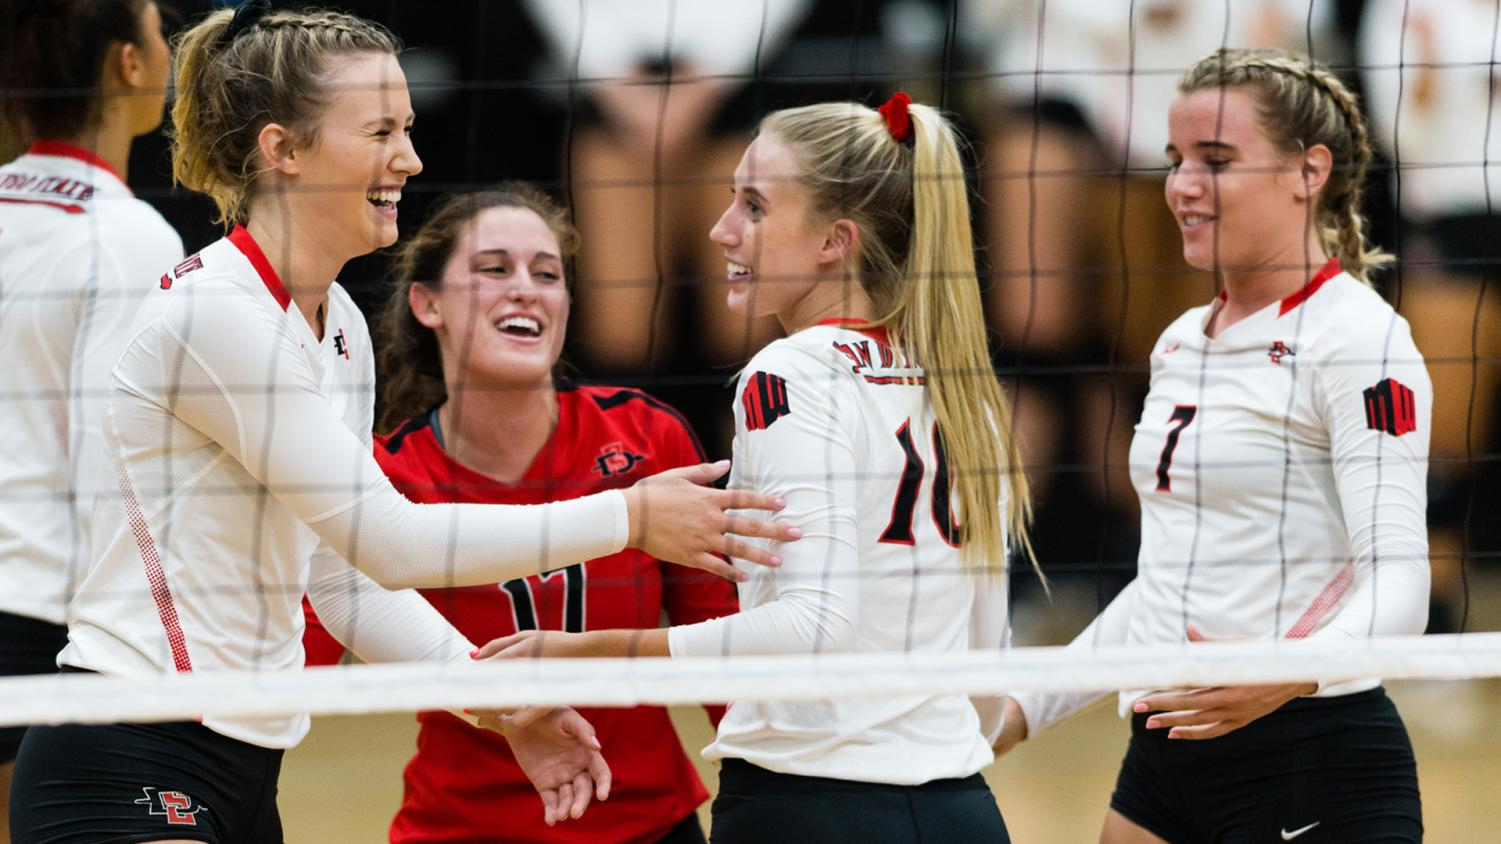 Junior setter Camryn Machado celebrates with her teammates after winning a point.